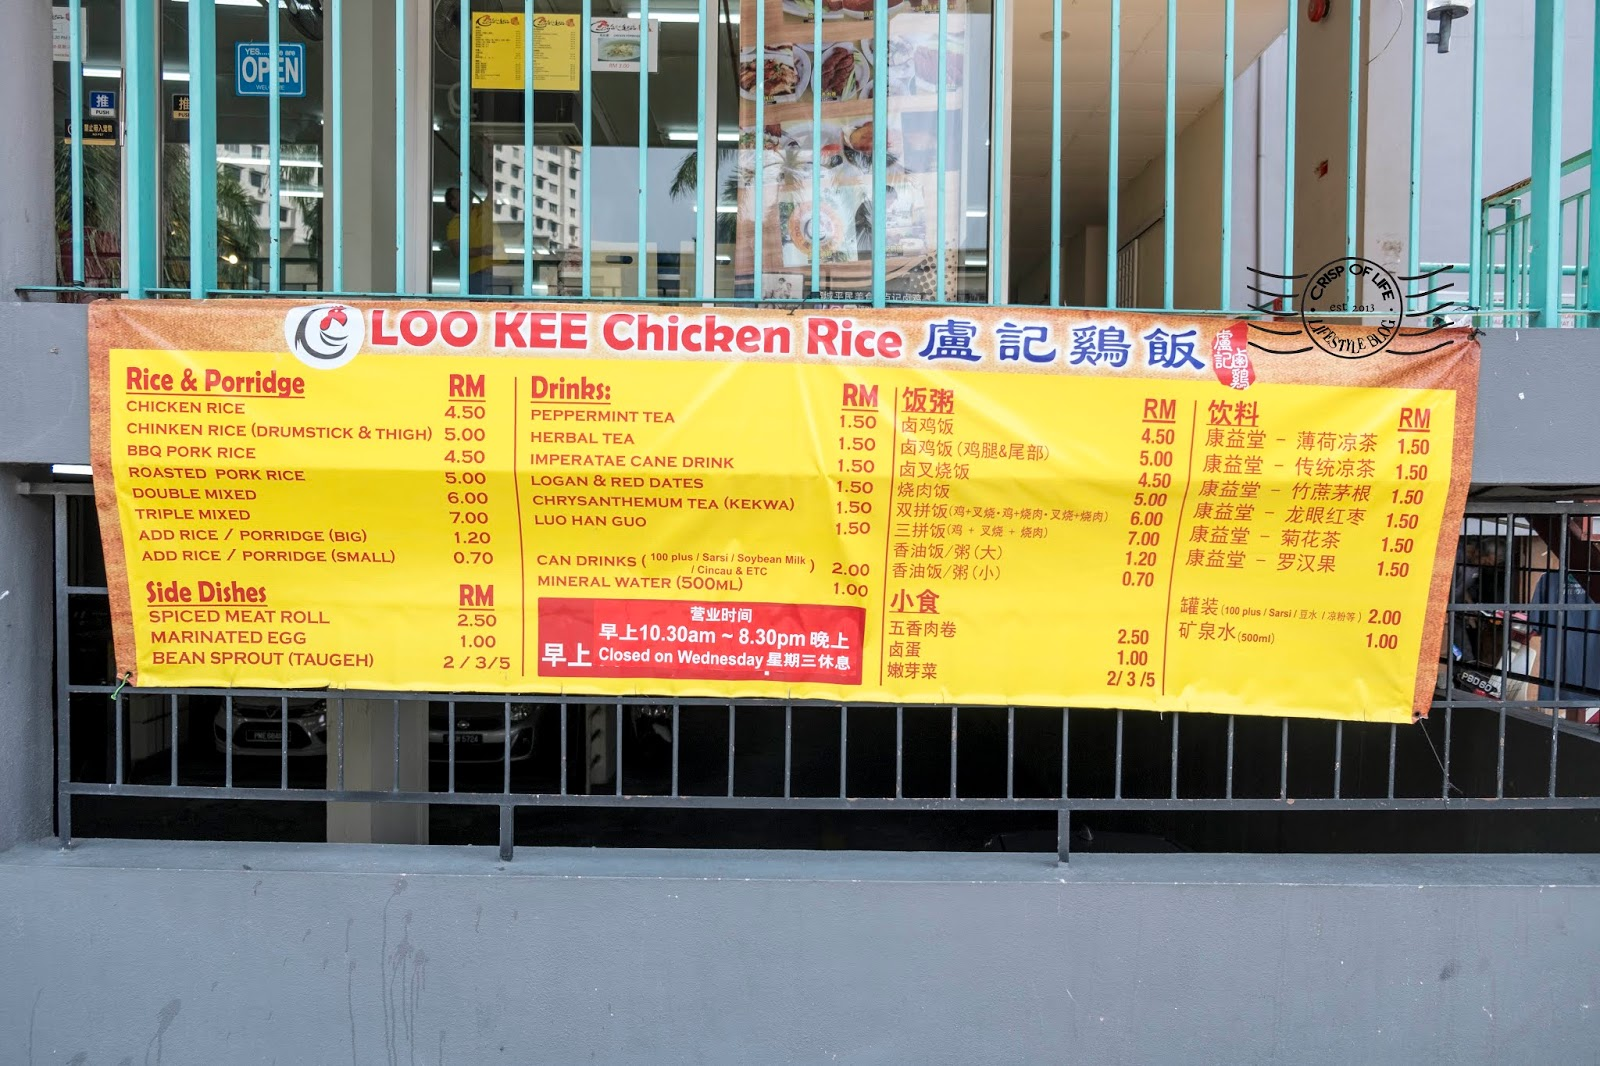 Loo Kee Chicken Rice 盧記鹵雞飯 @ Jelutong, Penang